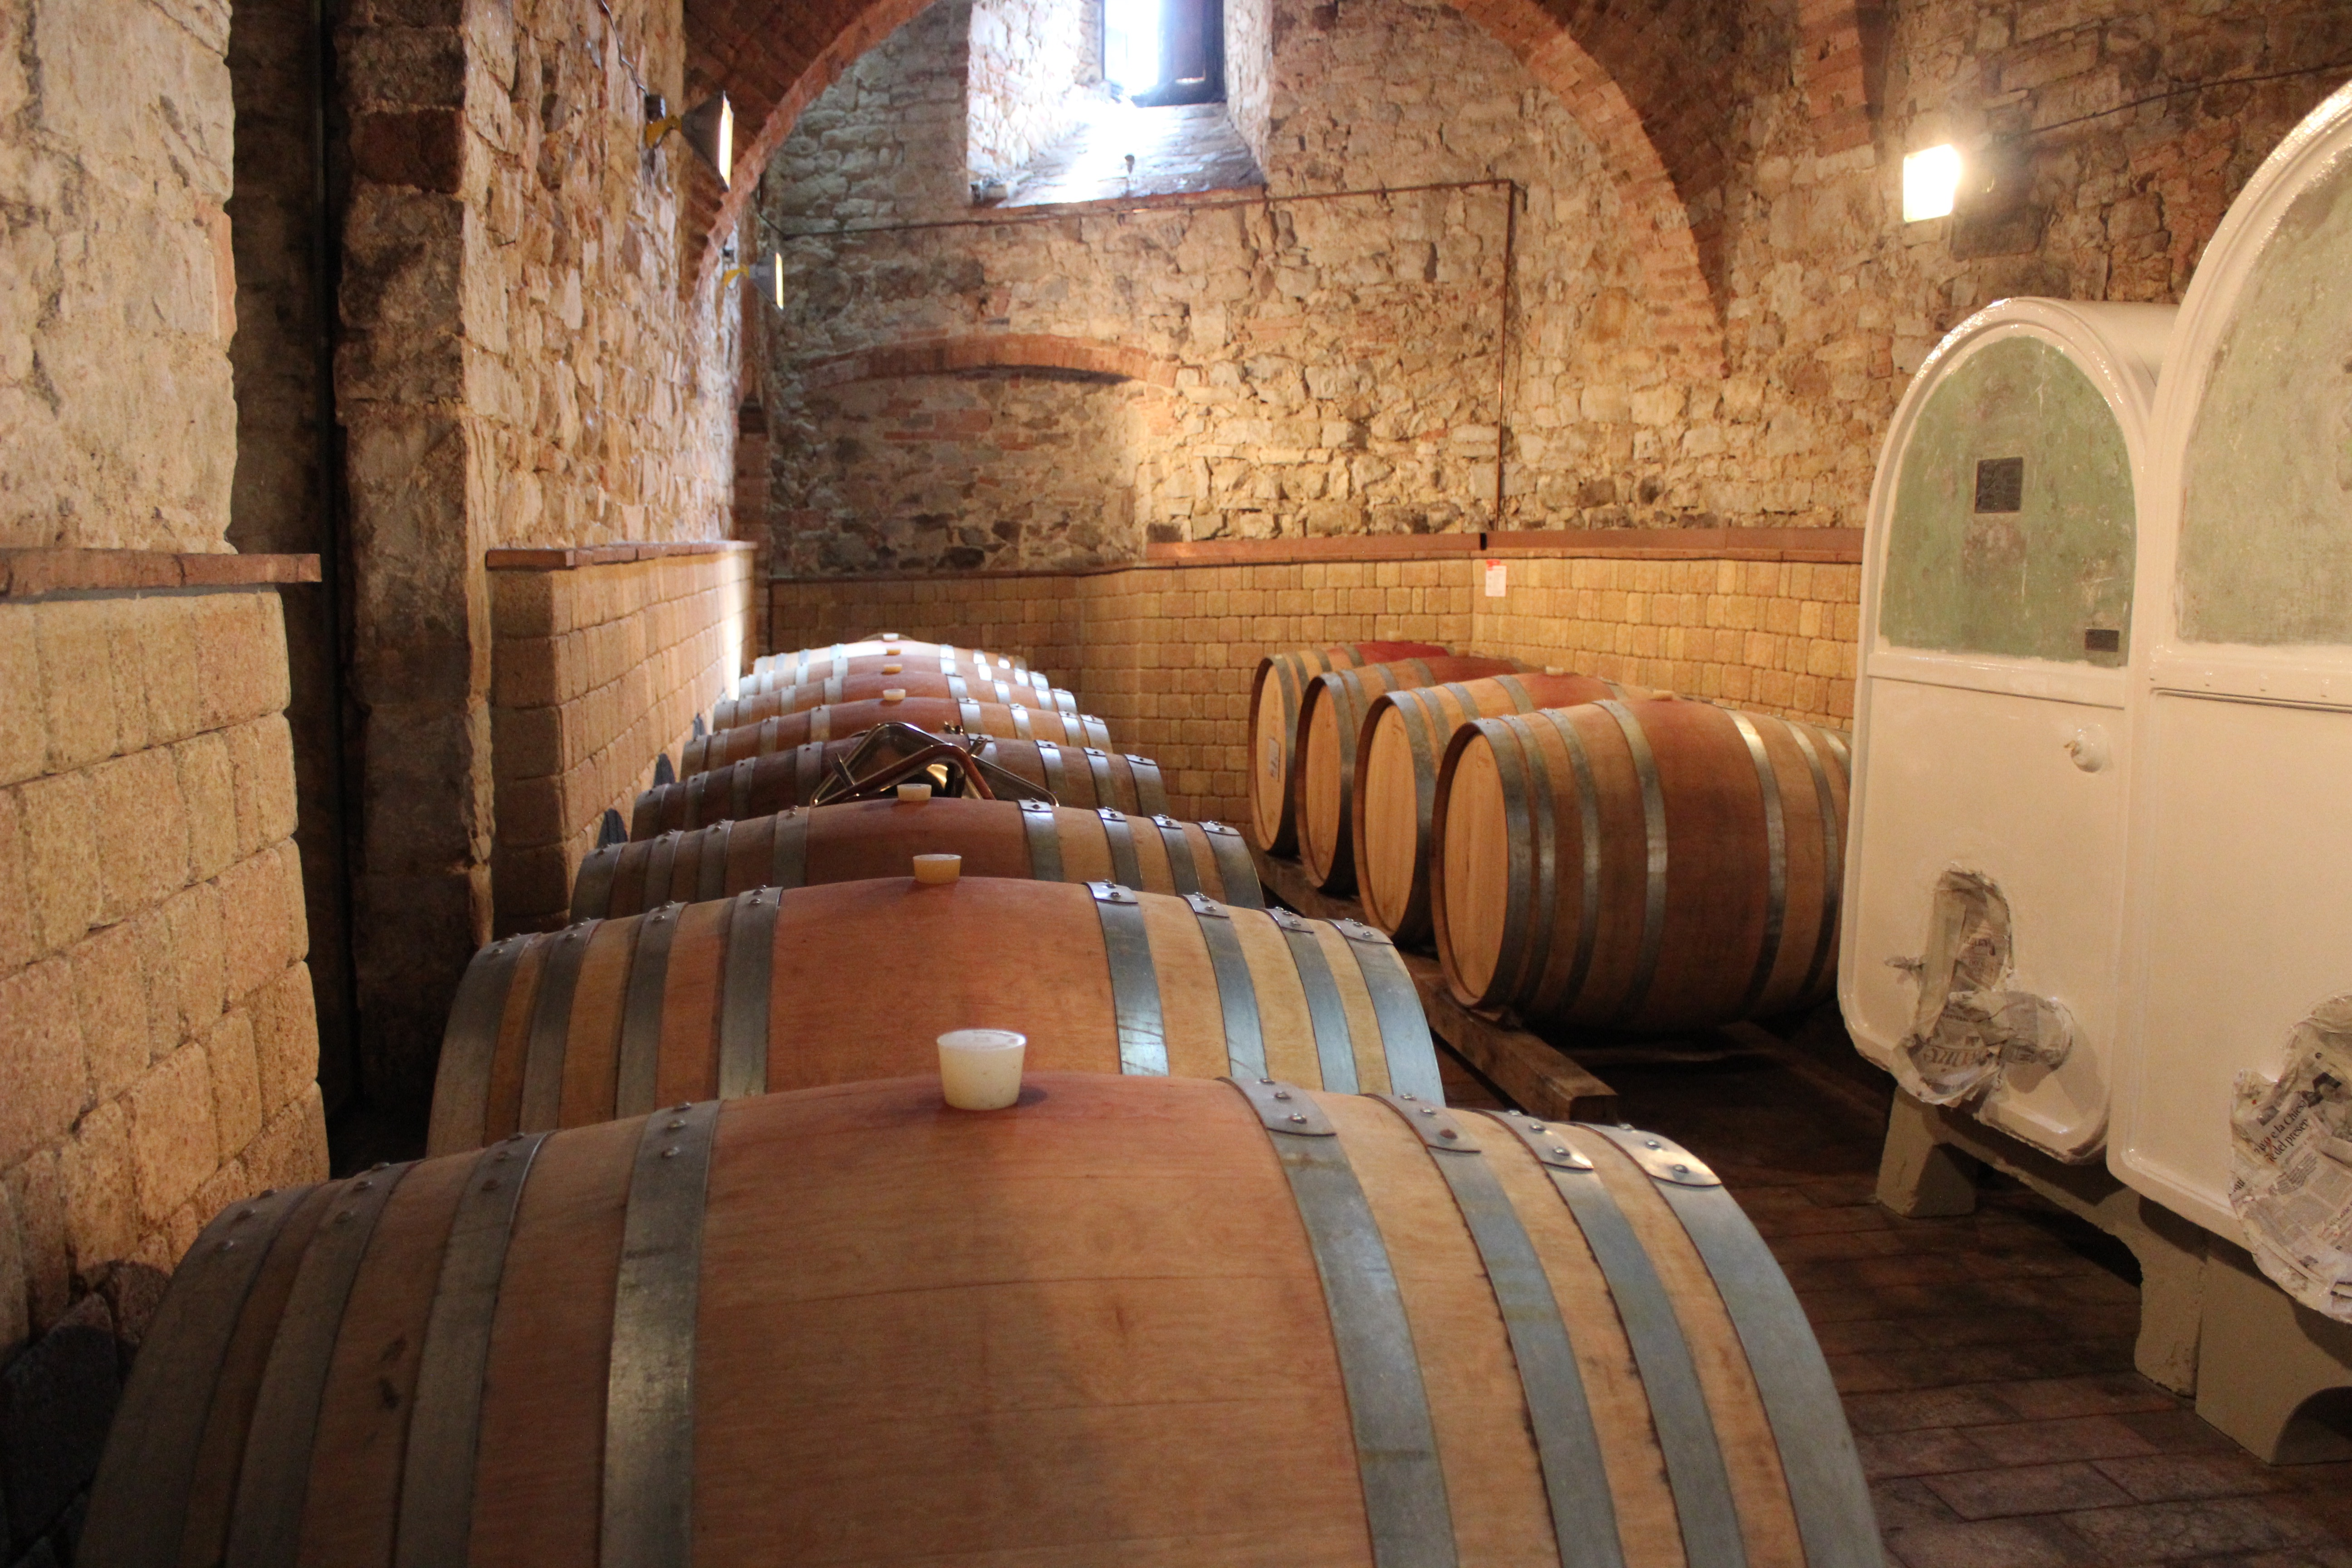 Oak barrels filled with young wine